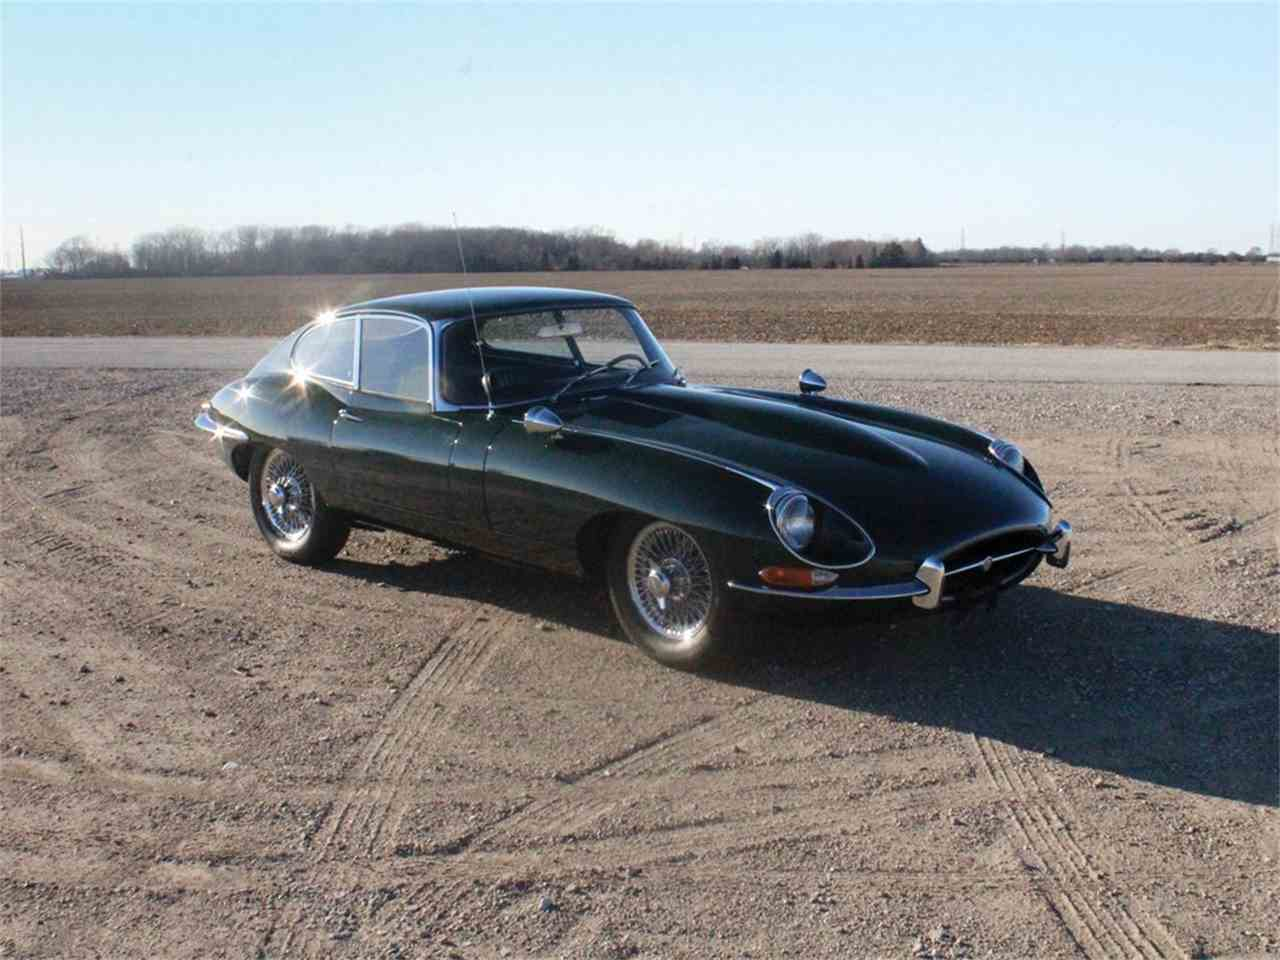 classiccars mark saloon in large jaguar cc com for of listings fort sale florida lauderdale c std view picture